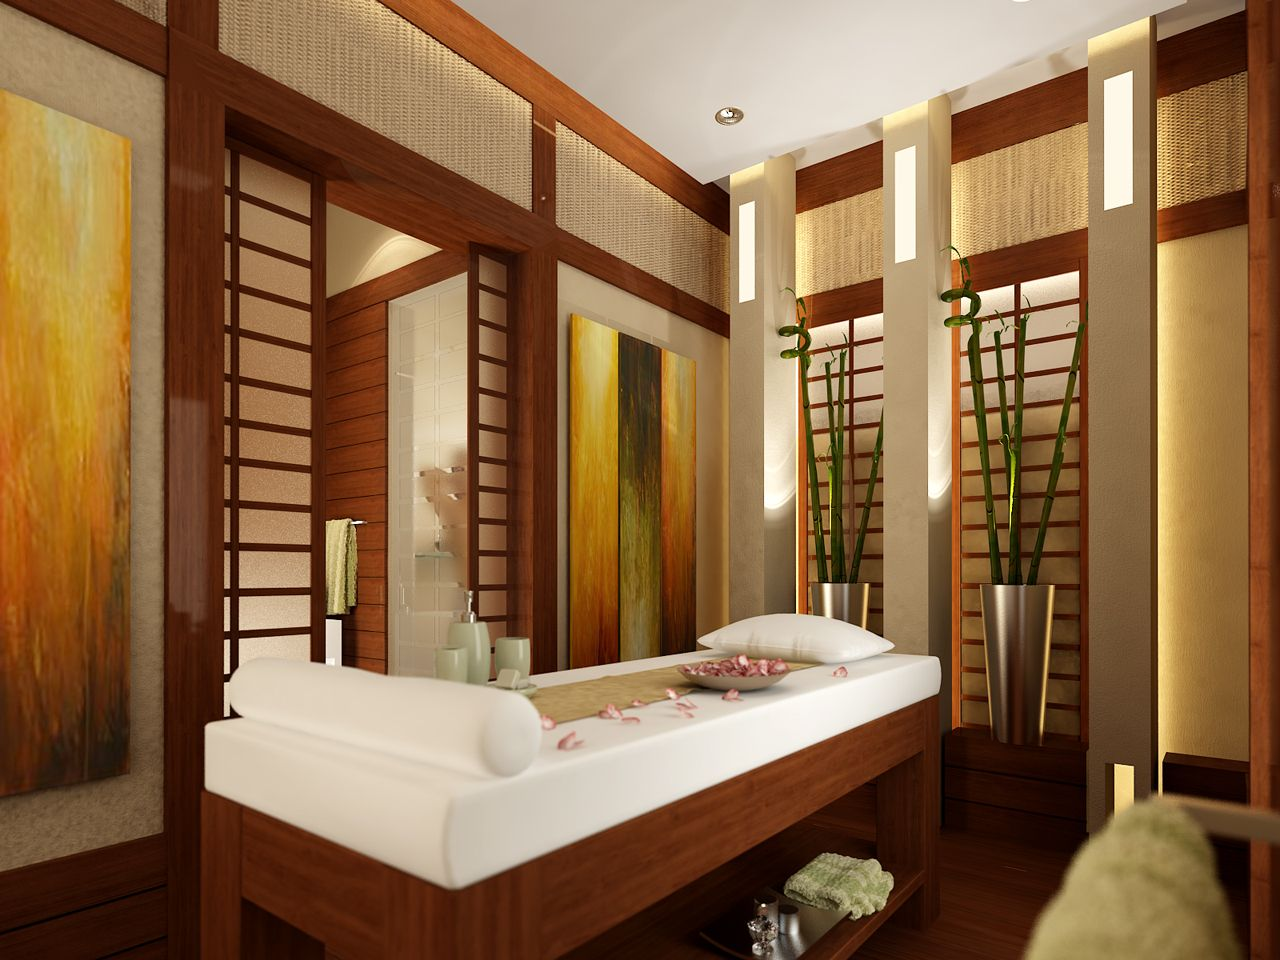 Massage Therapy Room Design Ideas Part - 18: Massage Room Ideas, Love The Curtains And Light | Office Stuff | Pinterest  | Room Ideas, Room And Lights